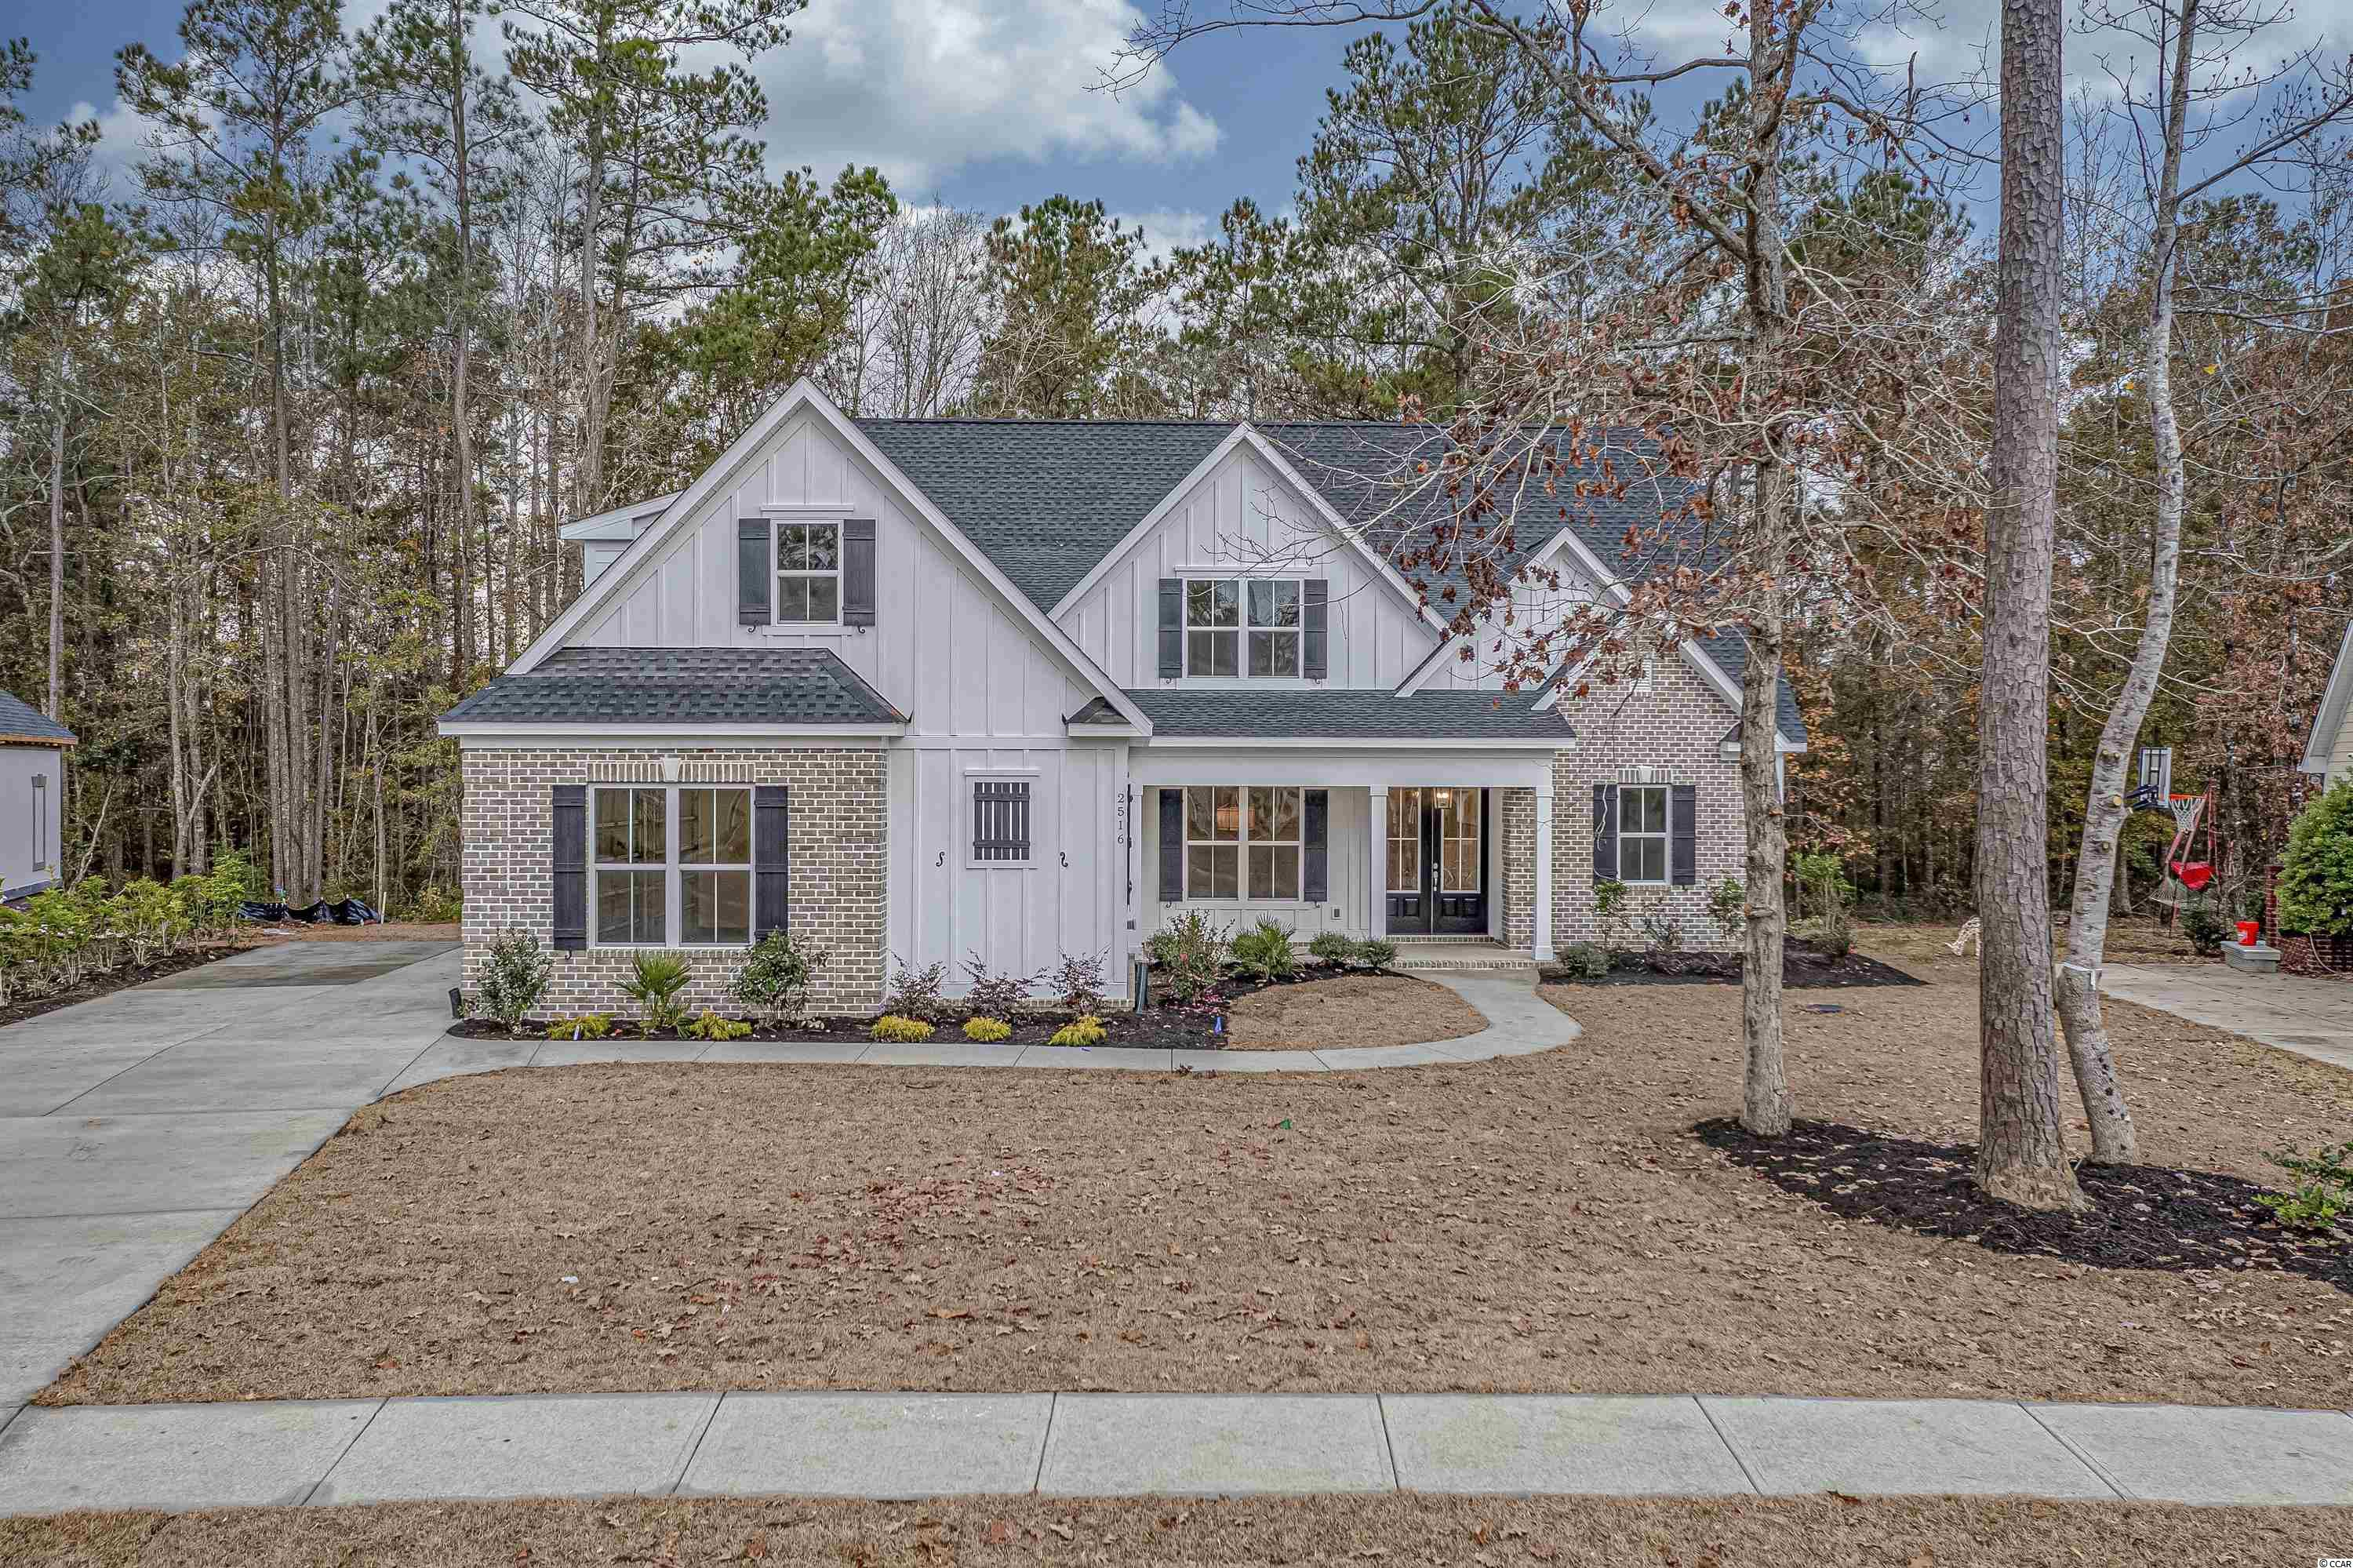 New DREAM home waiting for you in one of MYRTLE BEACH'S finest planned communities, Cypress River Plantation! This beautiful homestead is located in a gated neighborhood with 24-hour security, a private boat landing, meeting rooms, a fitness center, tennis and basketball courts, large club house with kitchen, and an outdoor olympic size swimming pool for all to enjoy. This exquisite house is brand new construction that will be ready early 2021! With a spacious open floor plan, this home has awesome custom features like tall coffered ceilings, granite countertops, and luxurious bathrooms just to name a few! Built by one of South Carolina's select few certified master builders, this stunning house with amazing attention to details will make you feel at home. Cypress River Plantation has a very limited amount of properties left, you don't want to miss out on this opportunity to live in this exceptional community located along the Intercoastal Waterway!